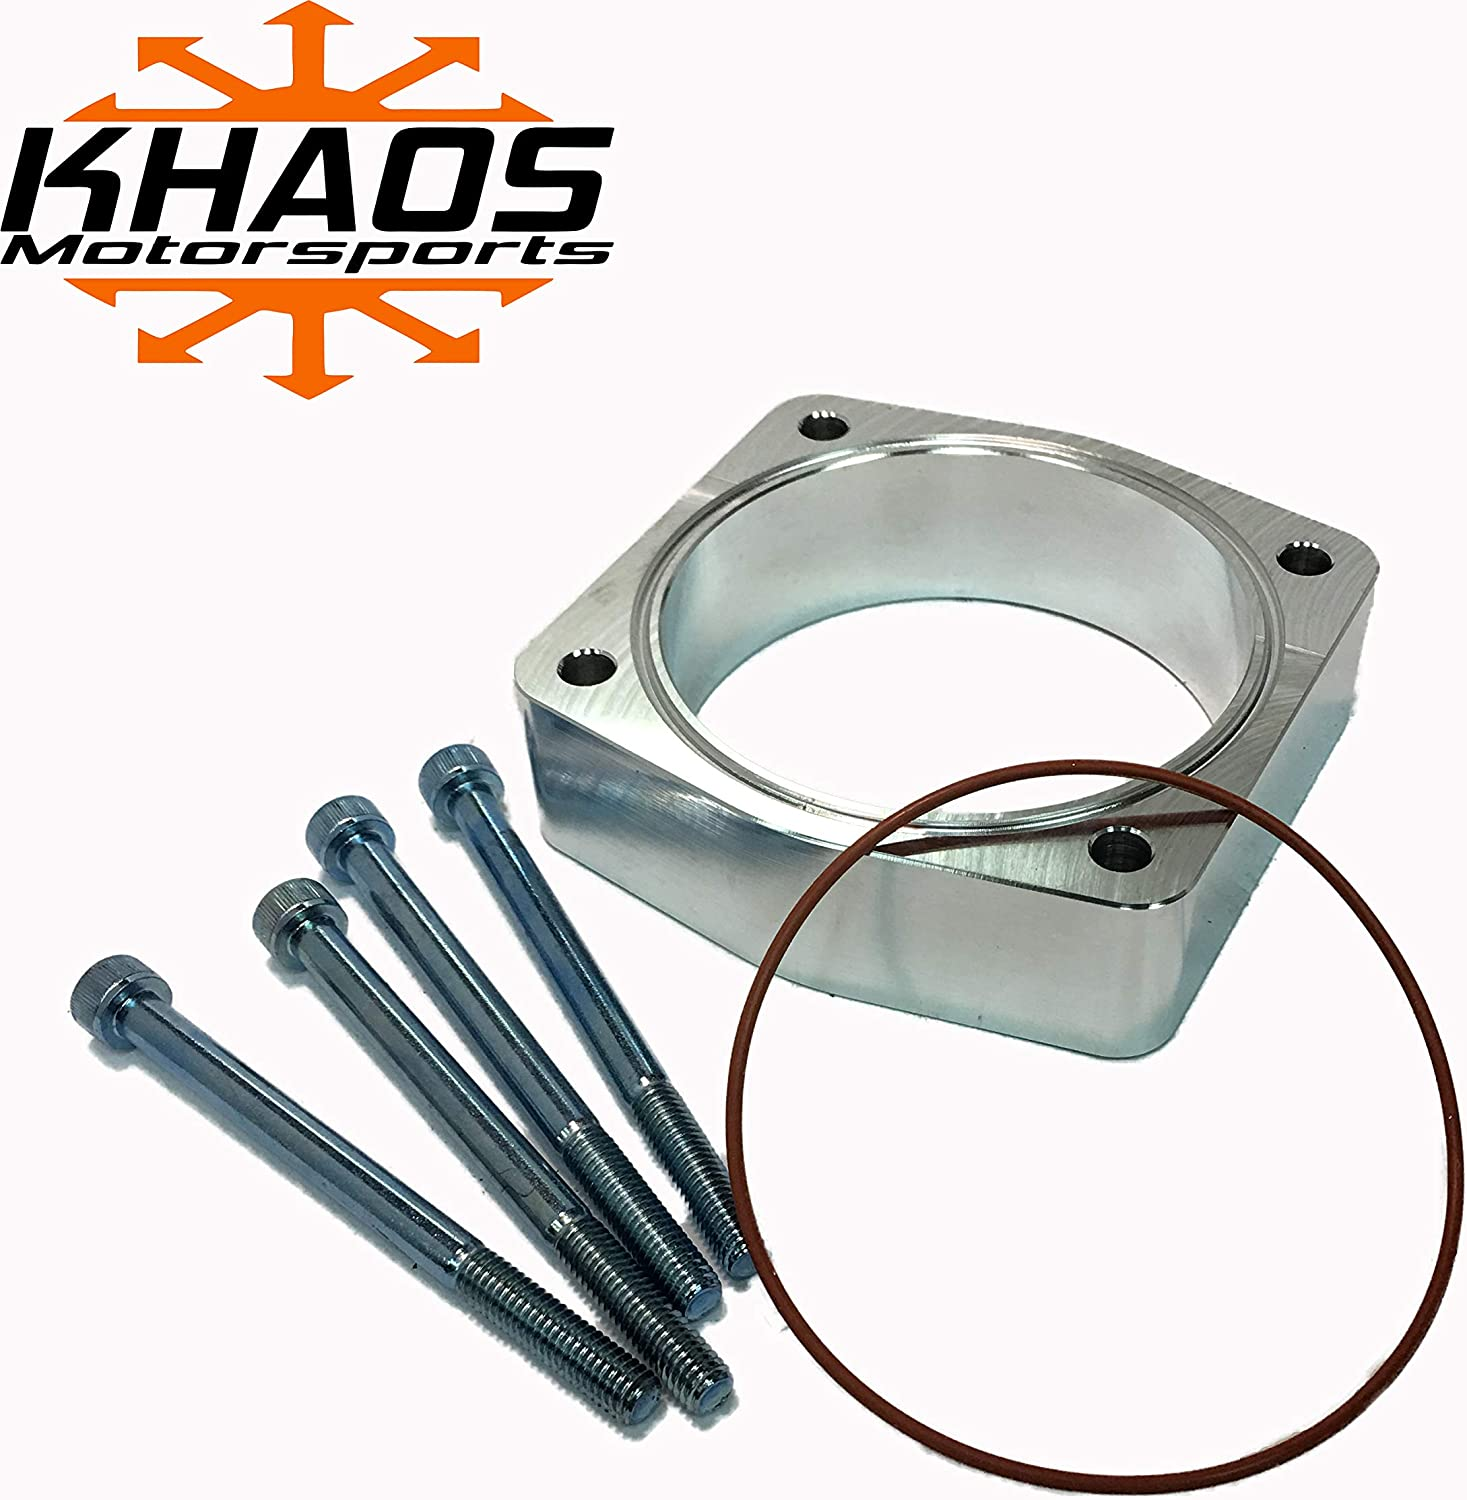 Khaos Motorsports Smooth Bore Throttle Fits Spacer Body Challenge the lowest price of Challenge the lowest price of Japan ☆ Japan I Nissan